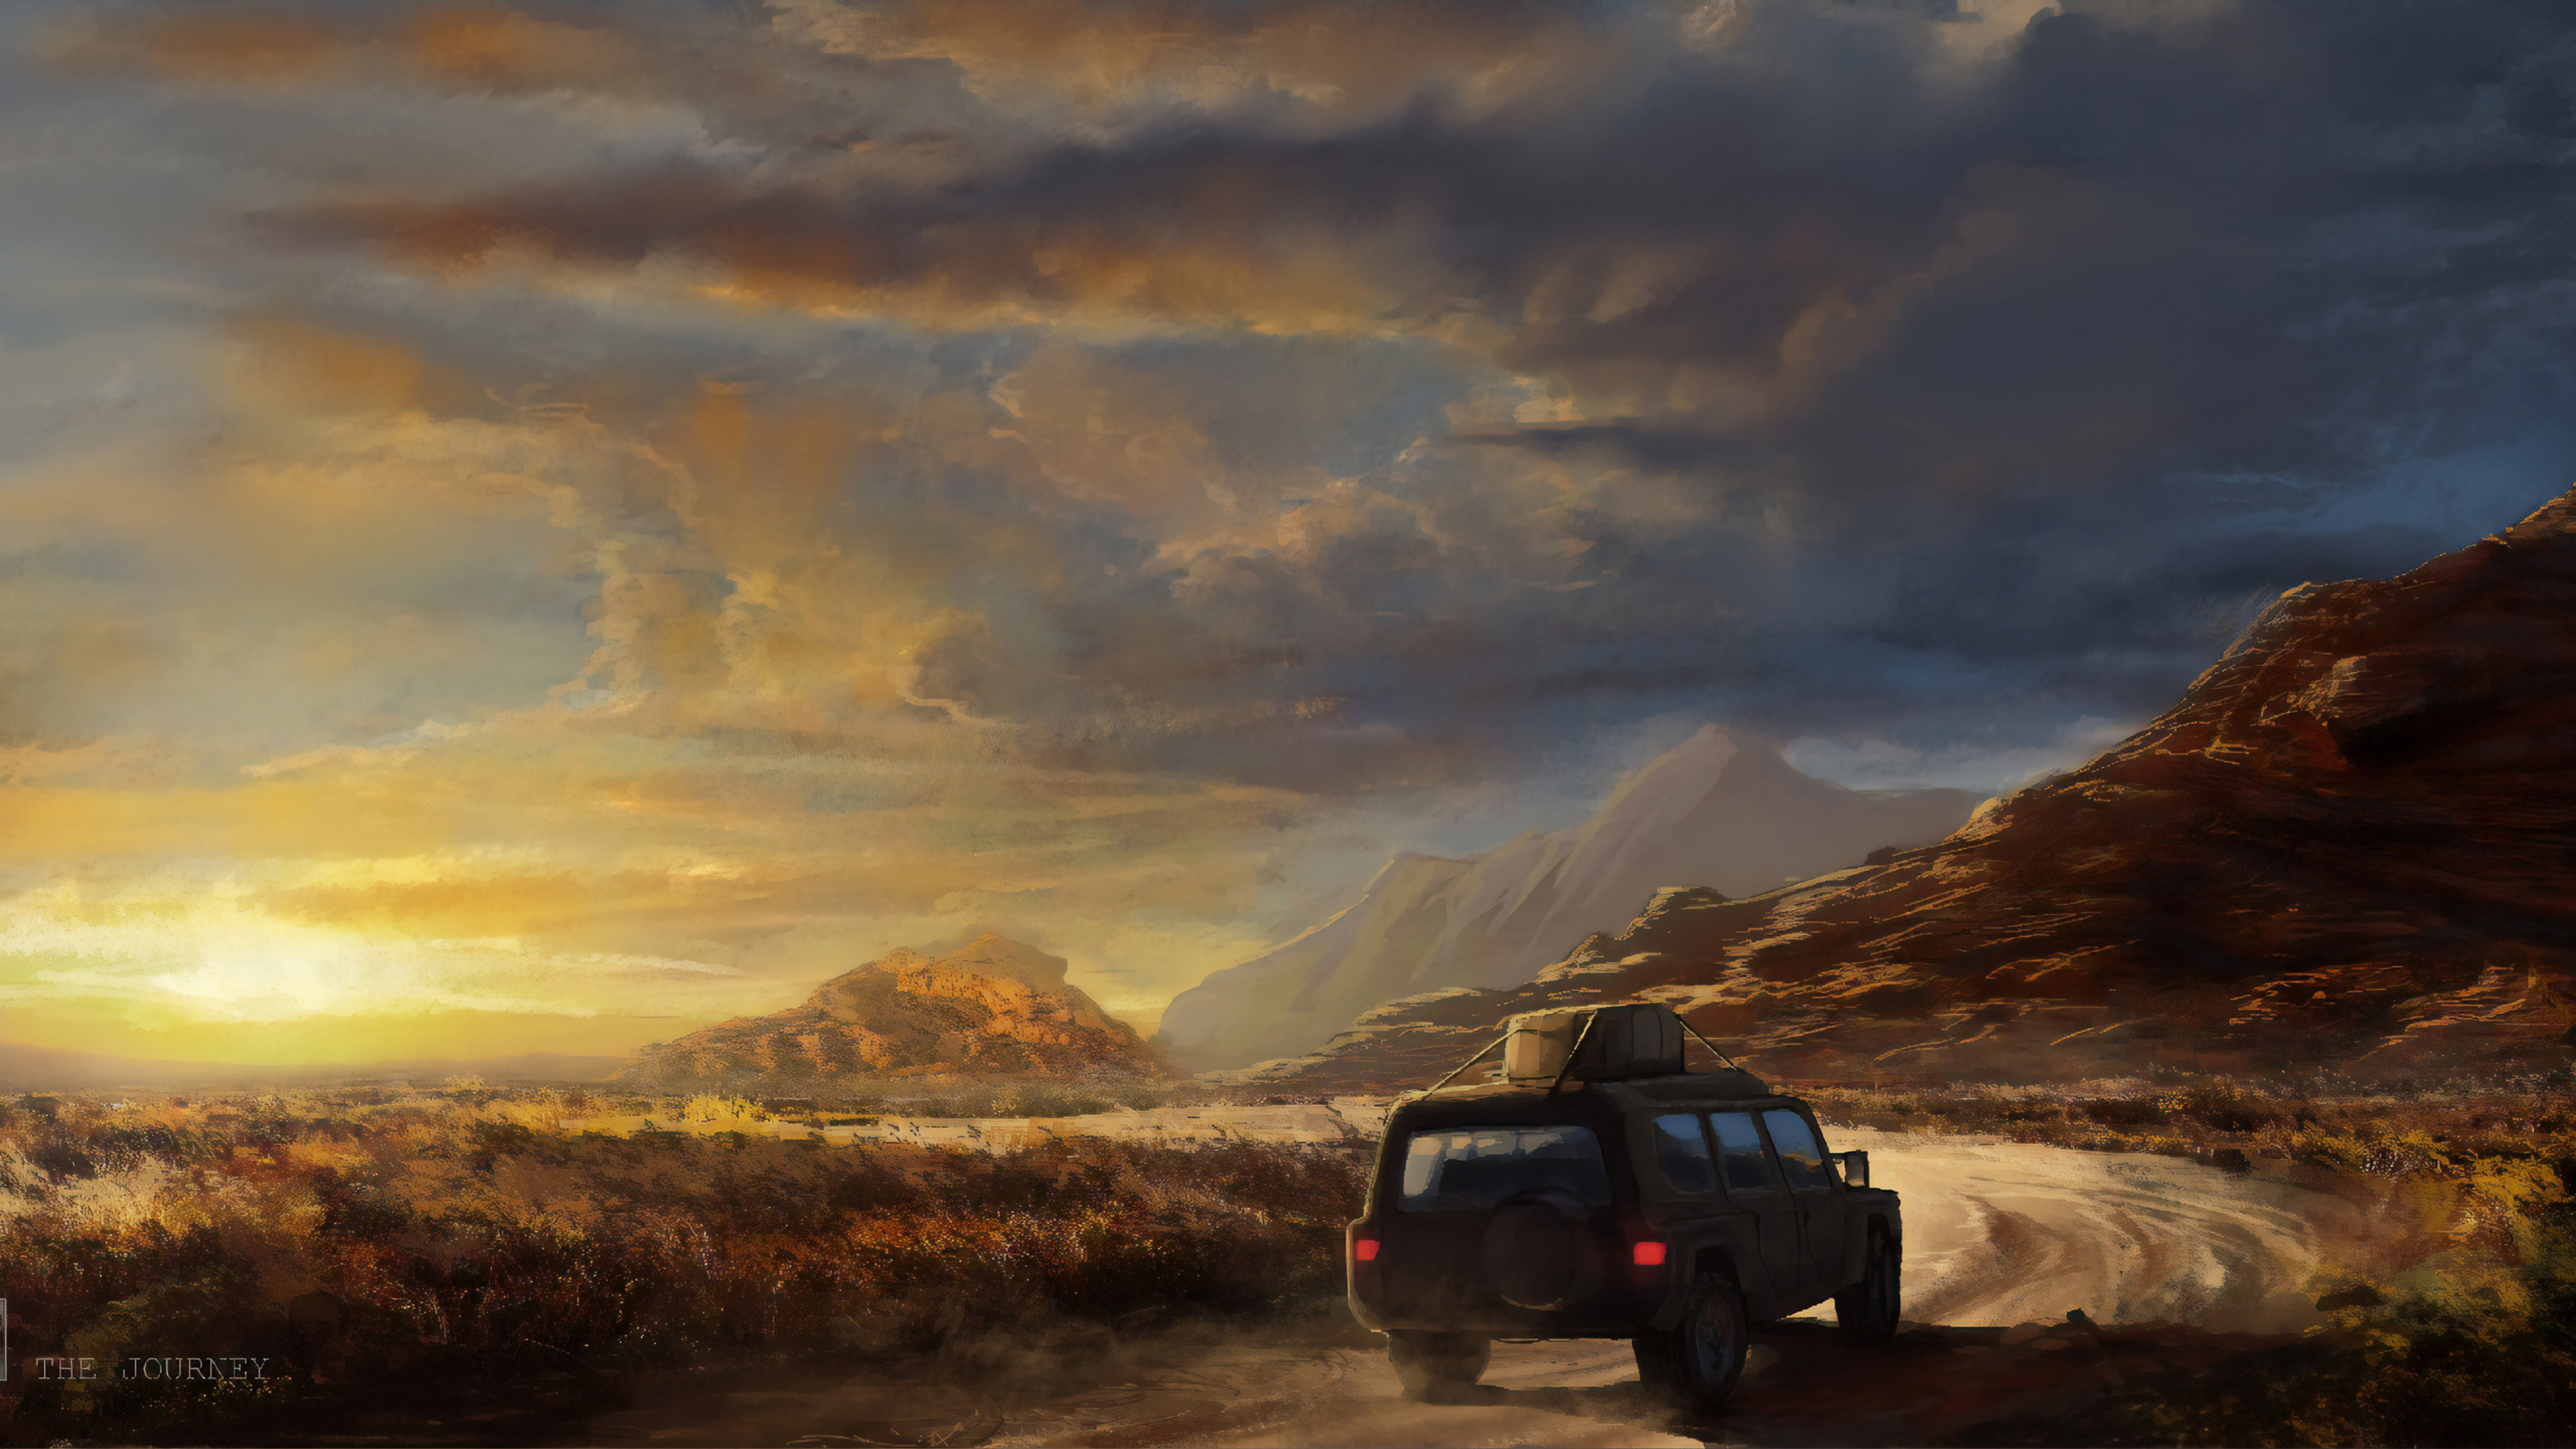 the journey 1560535295 - The Journey - hd-wallpapers, digital art wallpapers, deviantart wallpapers, artwork wallpapers, artist wallpapers, 4k-wallpapers